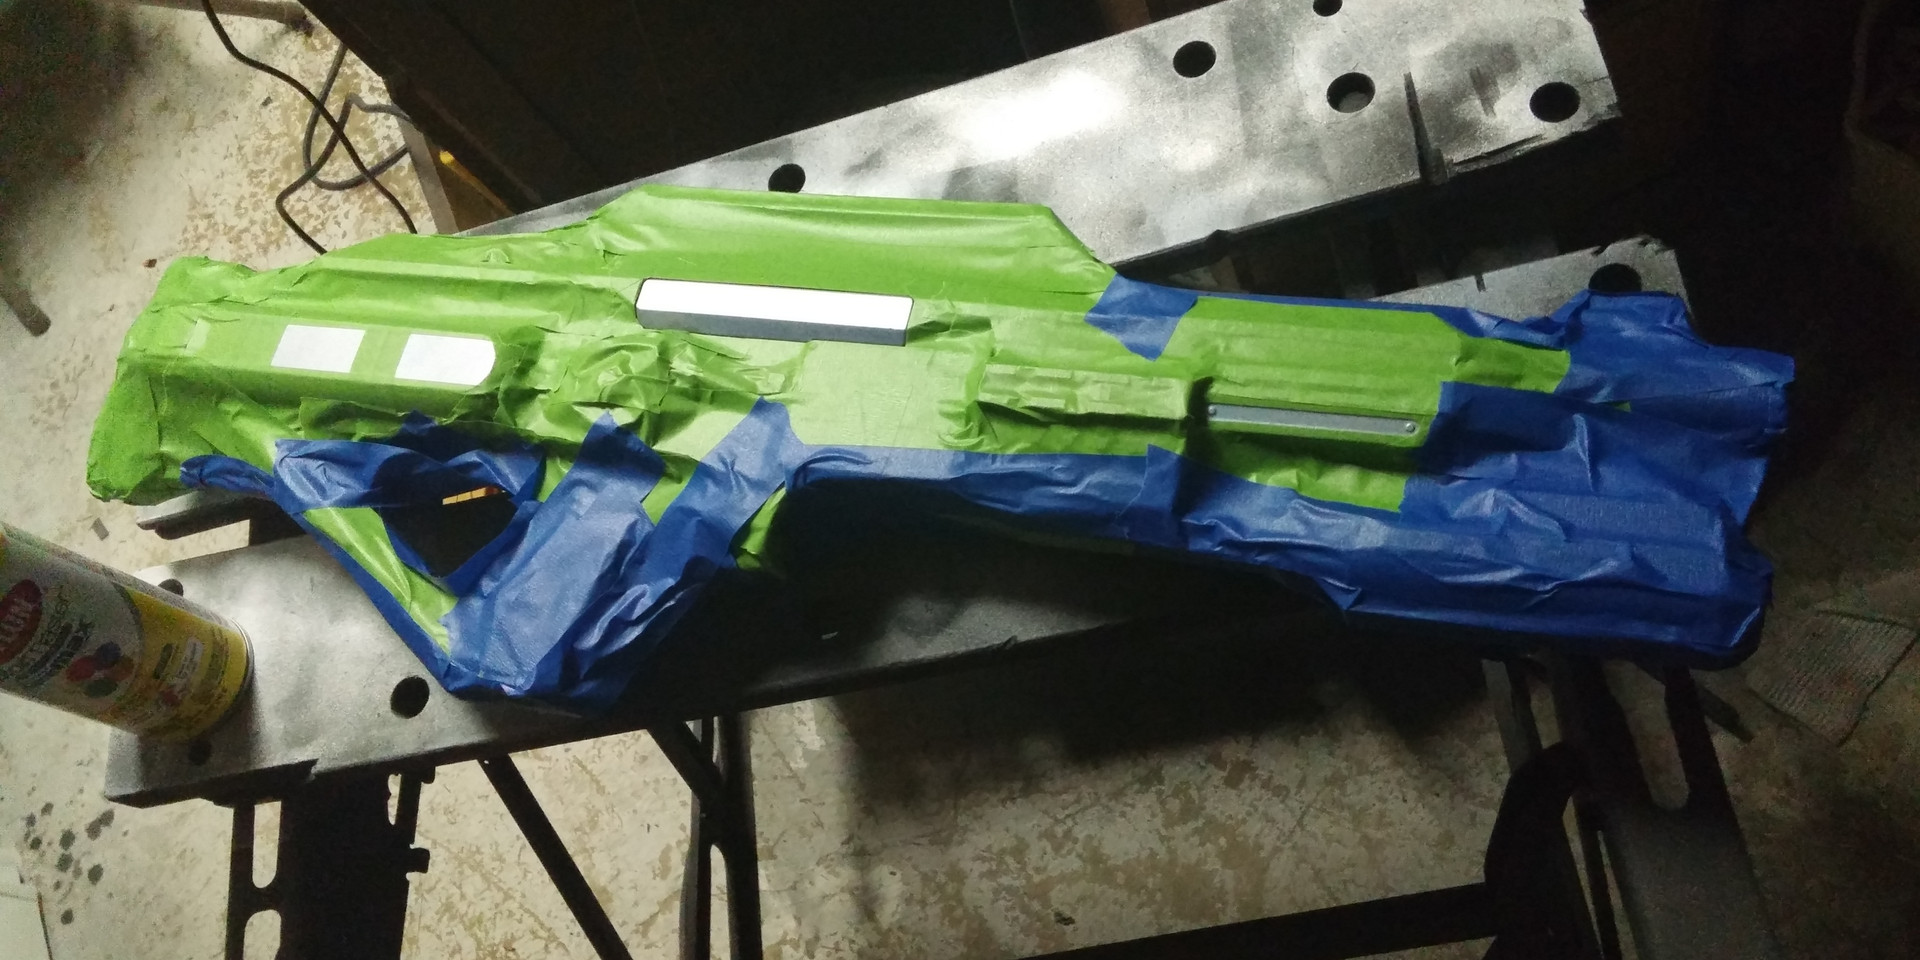 Decked out and painted nerf guns make for great sci-fi guns.